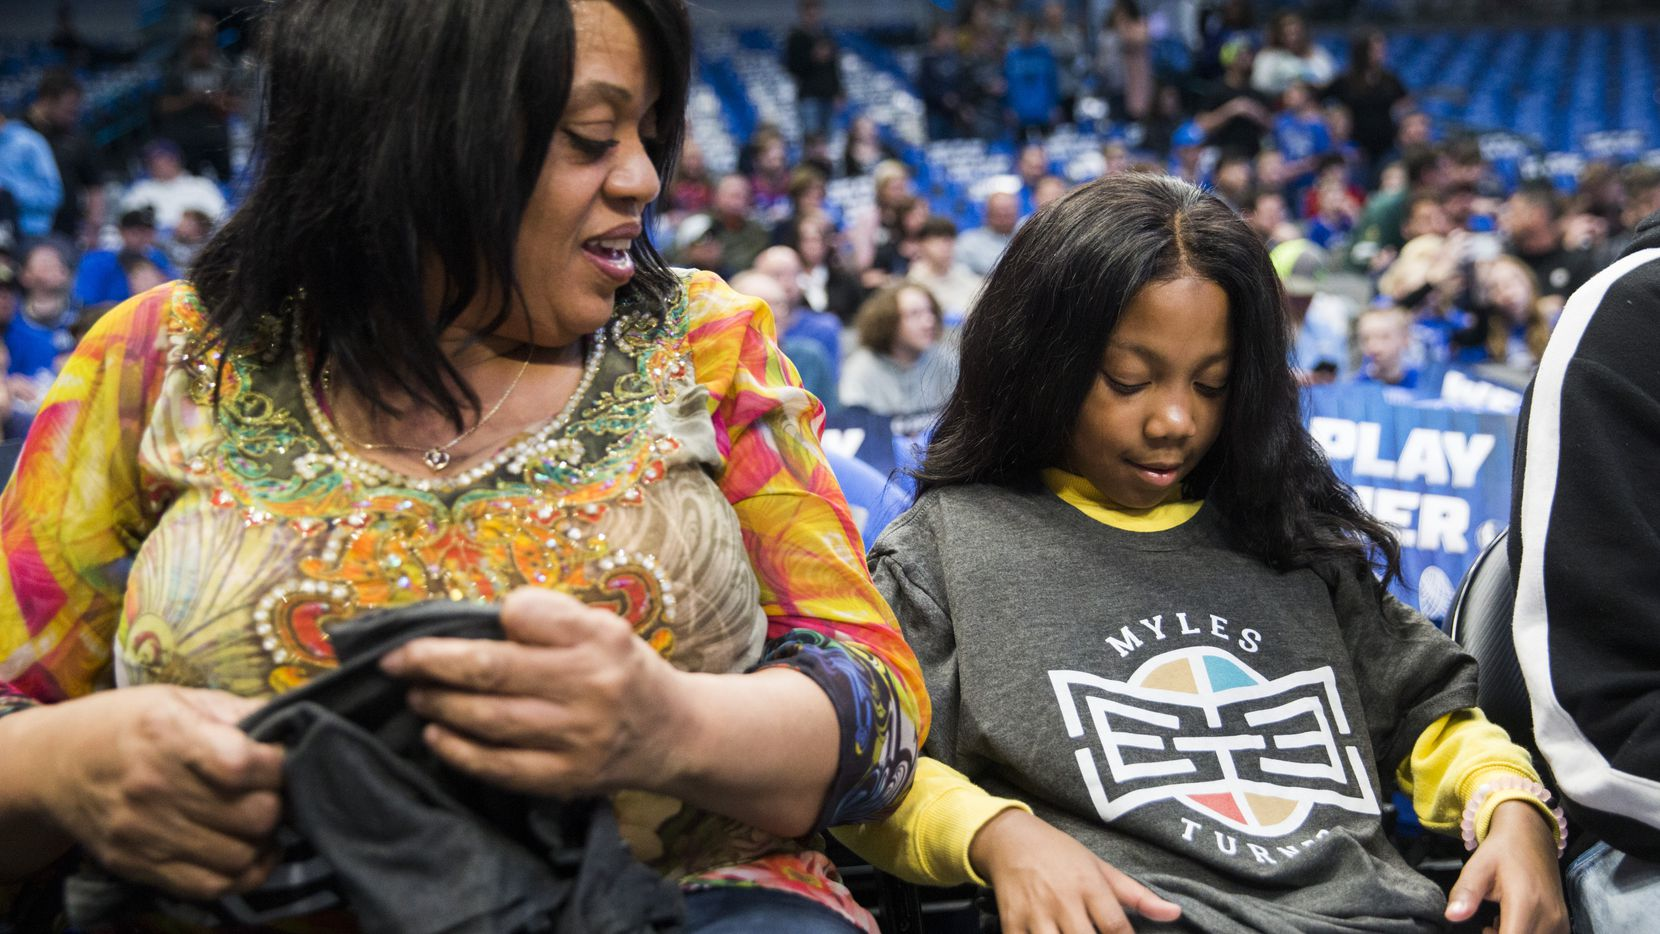 A'Myah Moon, 11, puts on a T-shirt with Indiana Pacers center Myles Turner's No 33 as her grandmother, Sheila Walker, watches her before an NBA game between the Indiana Pacers and the Dallas Mavericks on Sunday, March 8, 2020, at American Airlines Center in Dallas. Moon, who has a rare disease, was bullied at school. Turner and his family reached out to meet with Moon before the game.